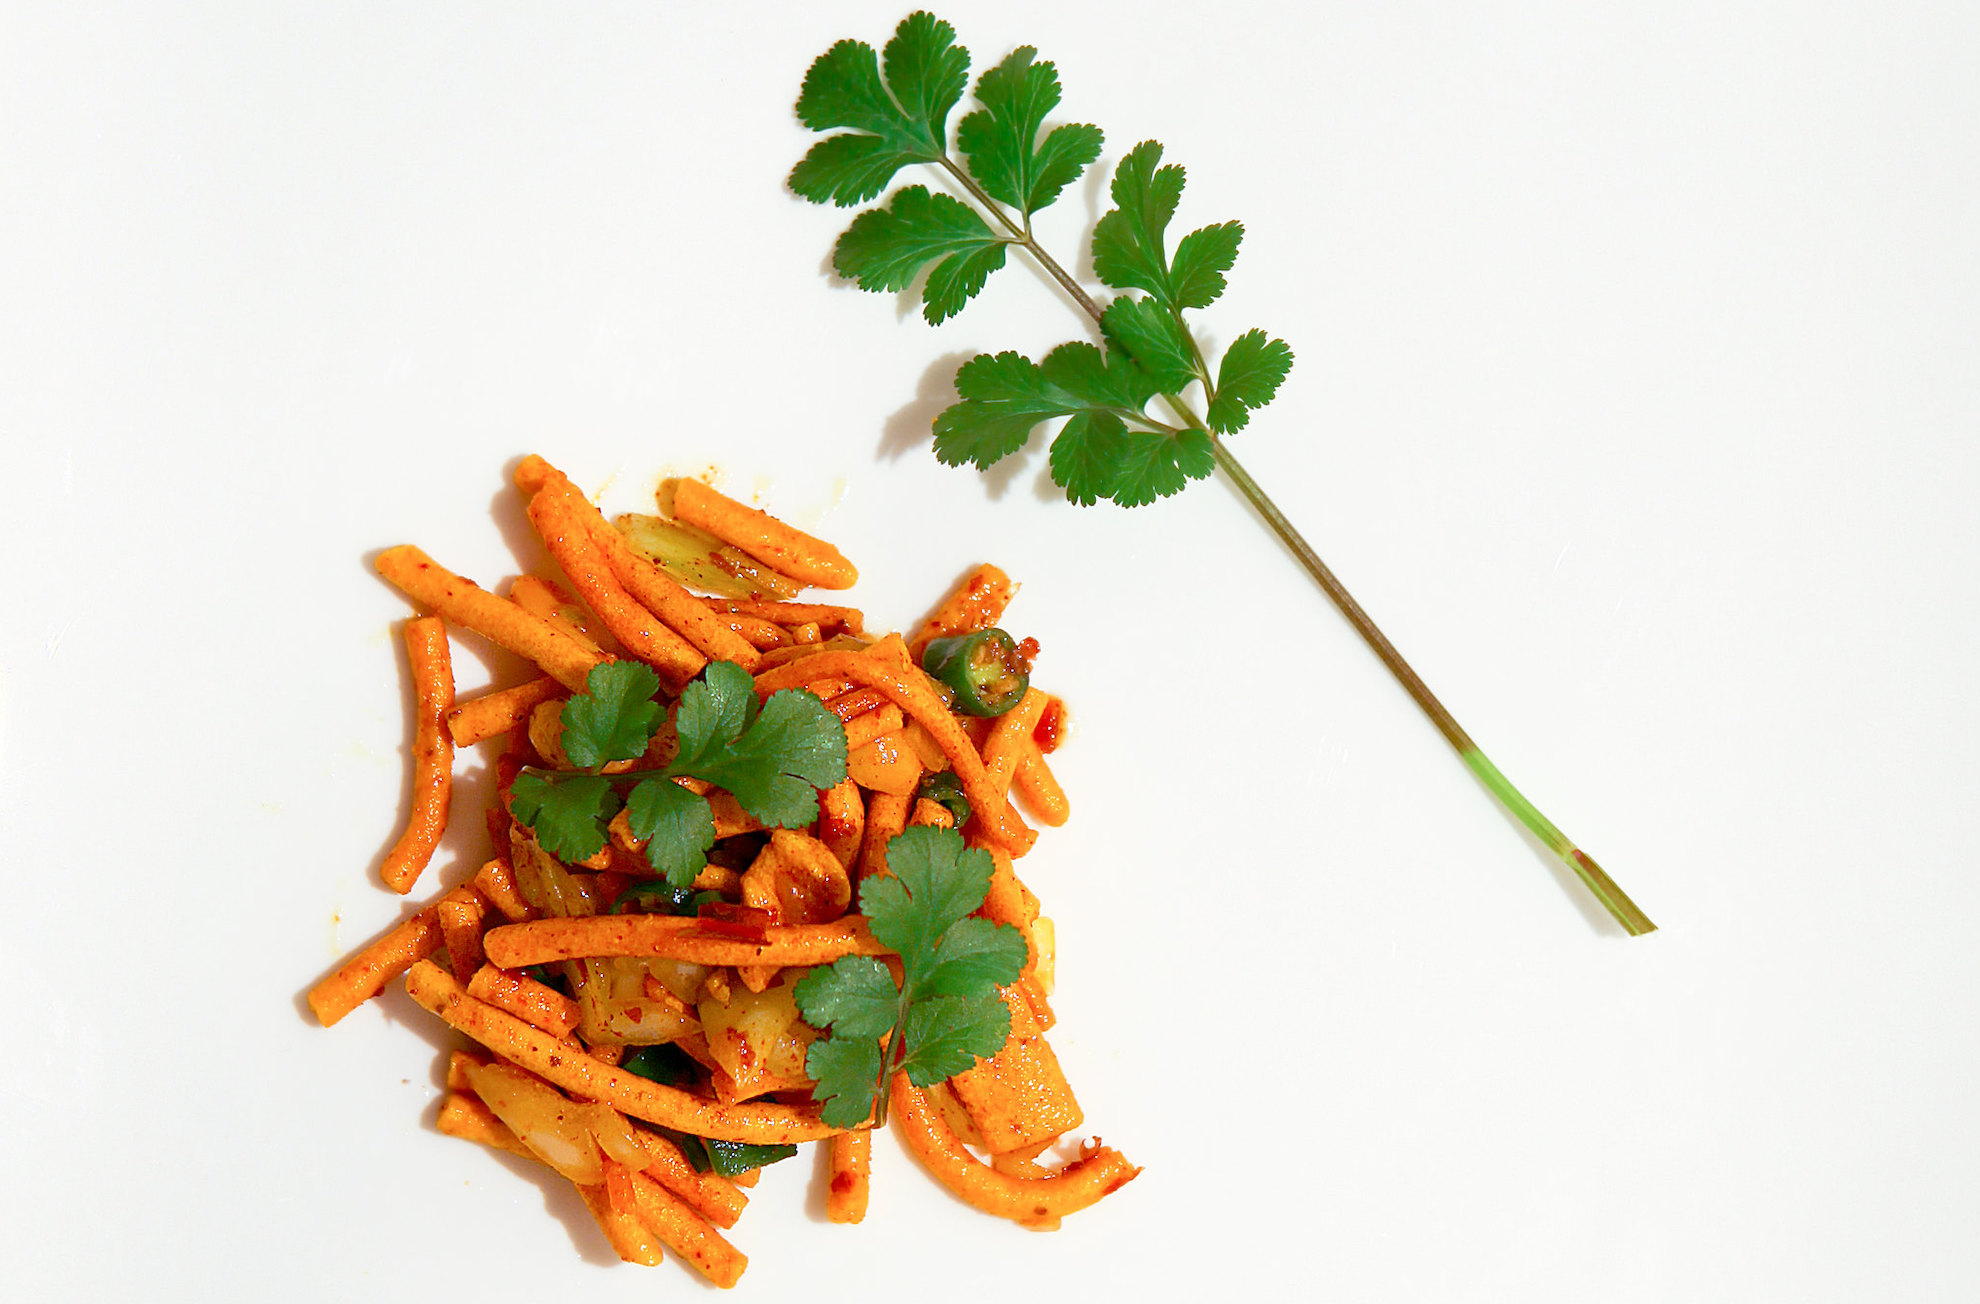 Chanachur or Bombay mix is a popular snack in South Asia. Many FMCG companies market different varieties of this product. Image via Flickr by Aftab Uzzaman. CC BY-NC.